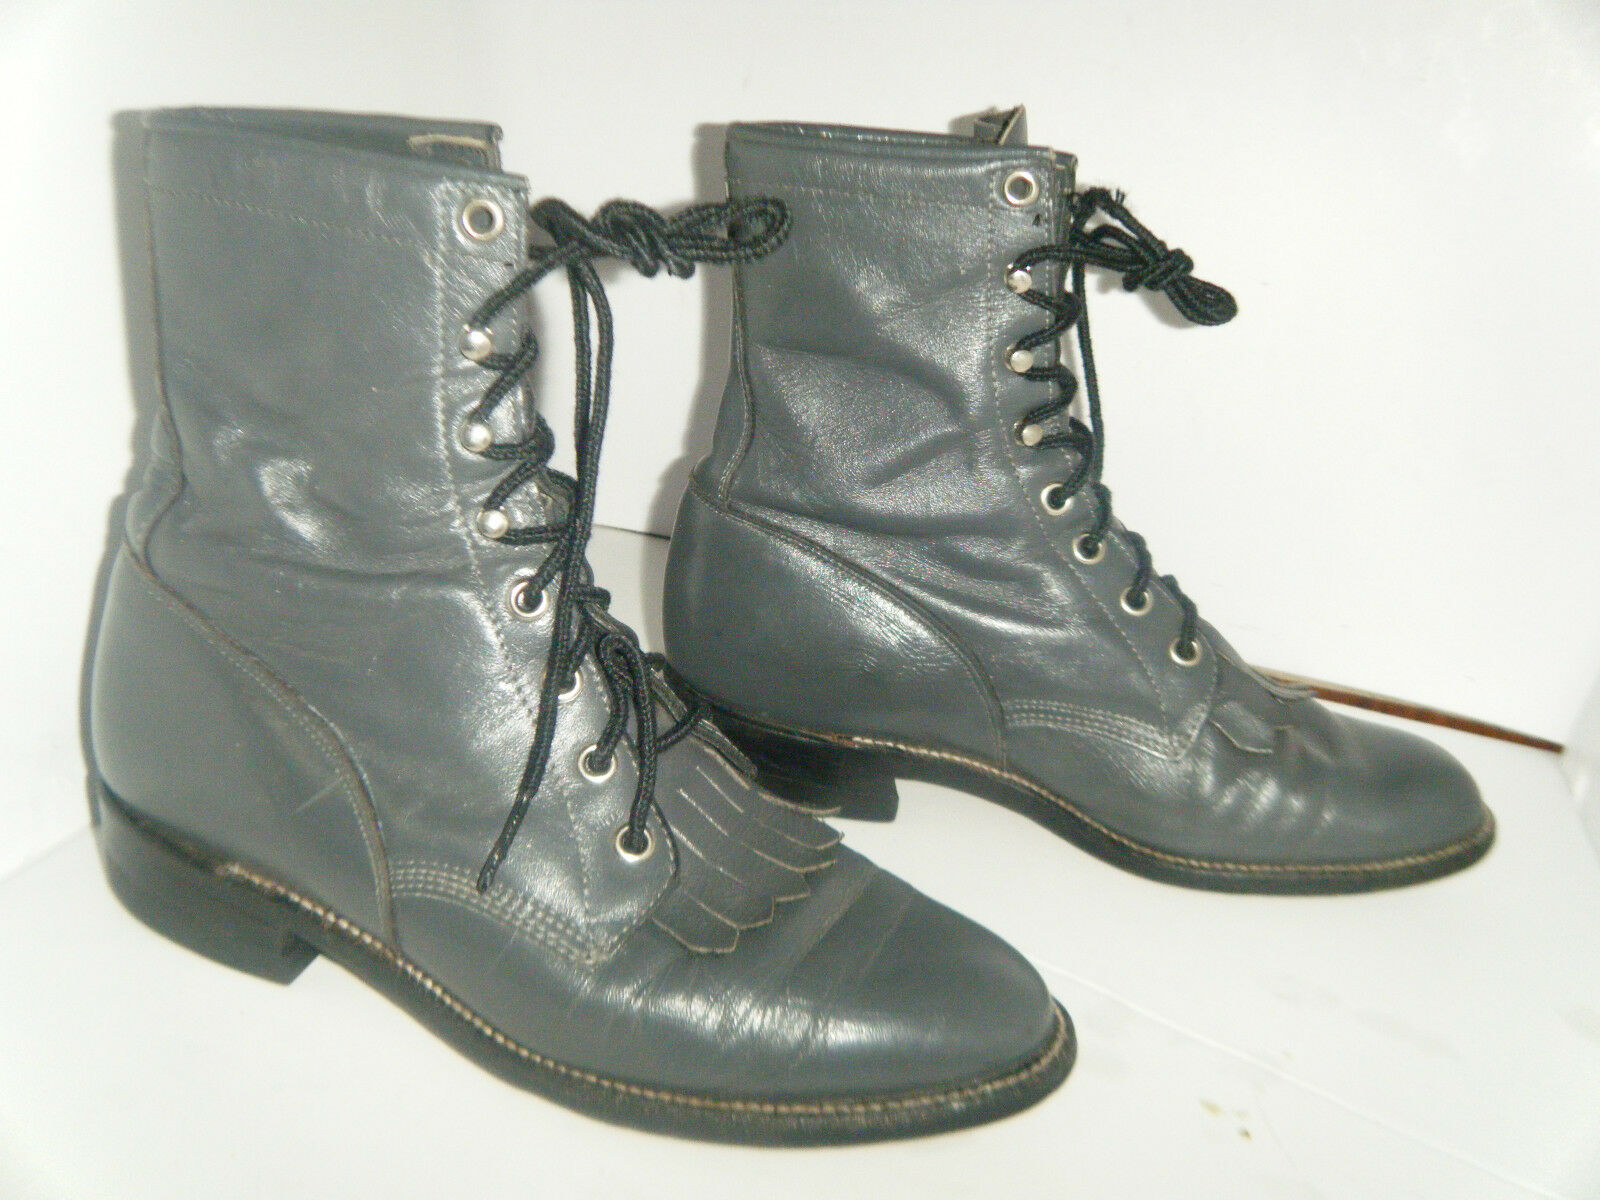 JUSTIN Roper Boots Size Lace Up 5.5 C Women's